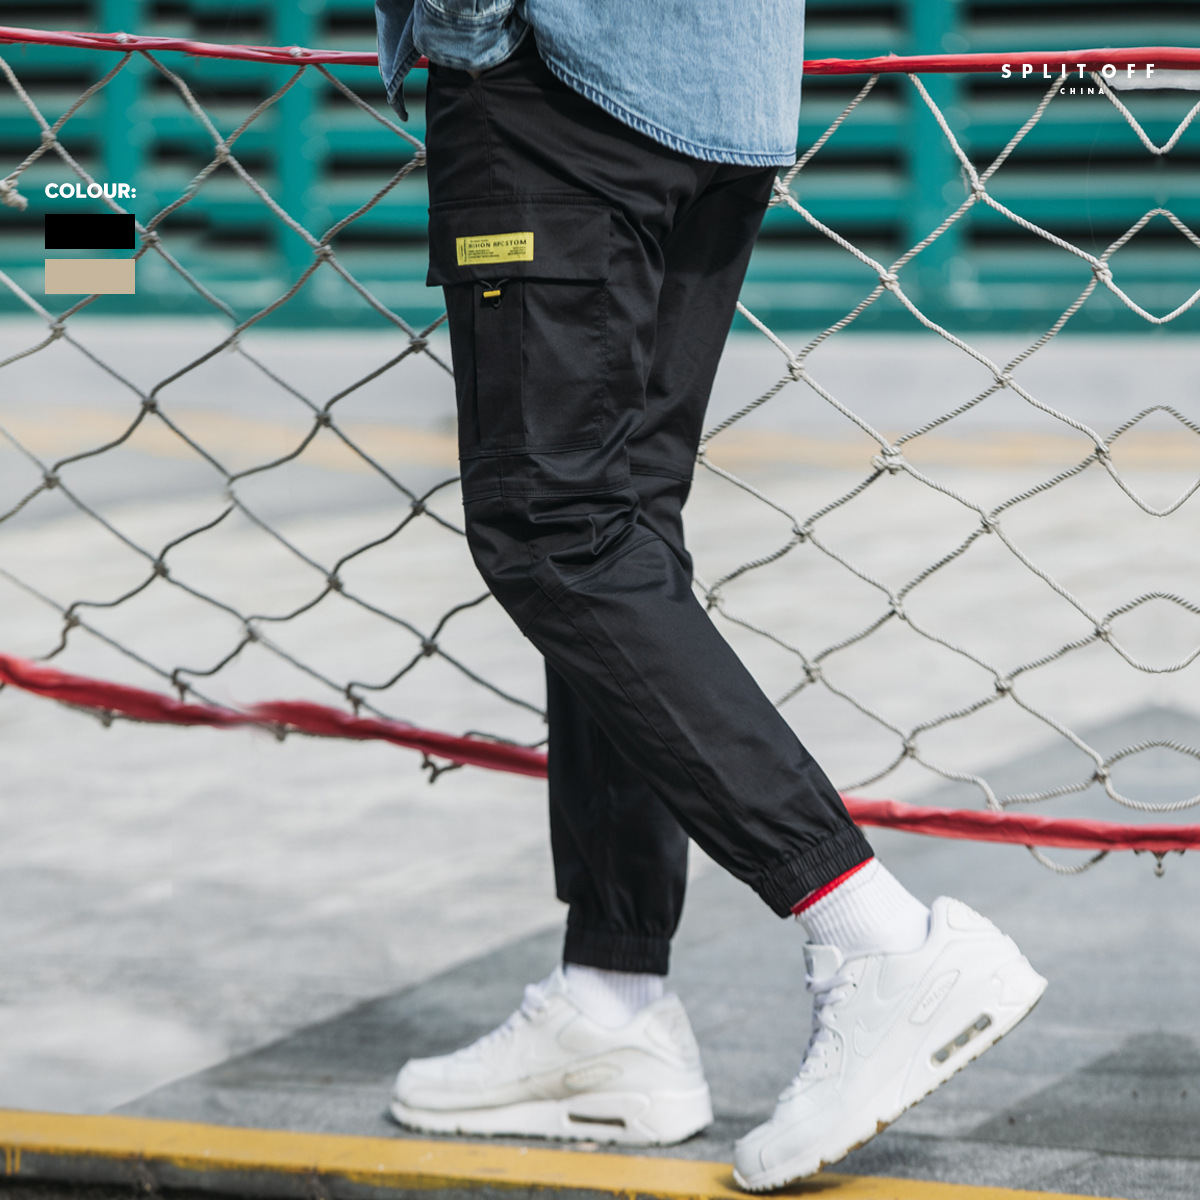 2019 Autumn Clothing New Style Bib Overall Men's Korean-style Trend Beam Leg Casual Trousers Loose-Fit Versatile Pants Men's